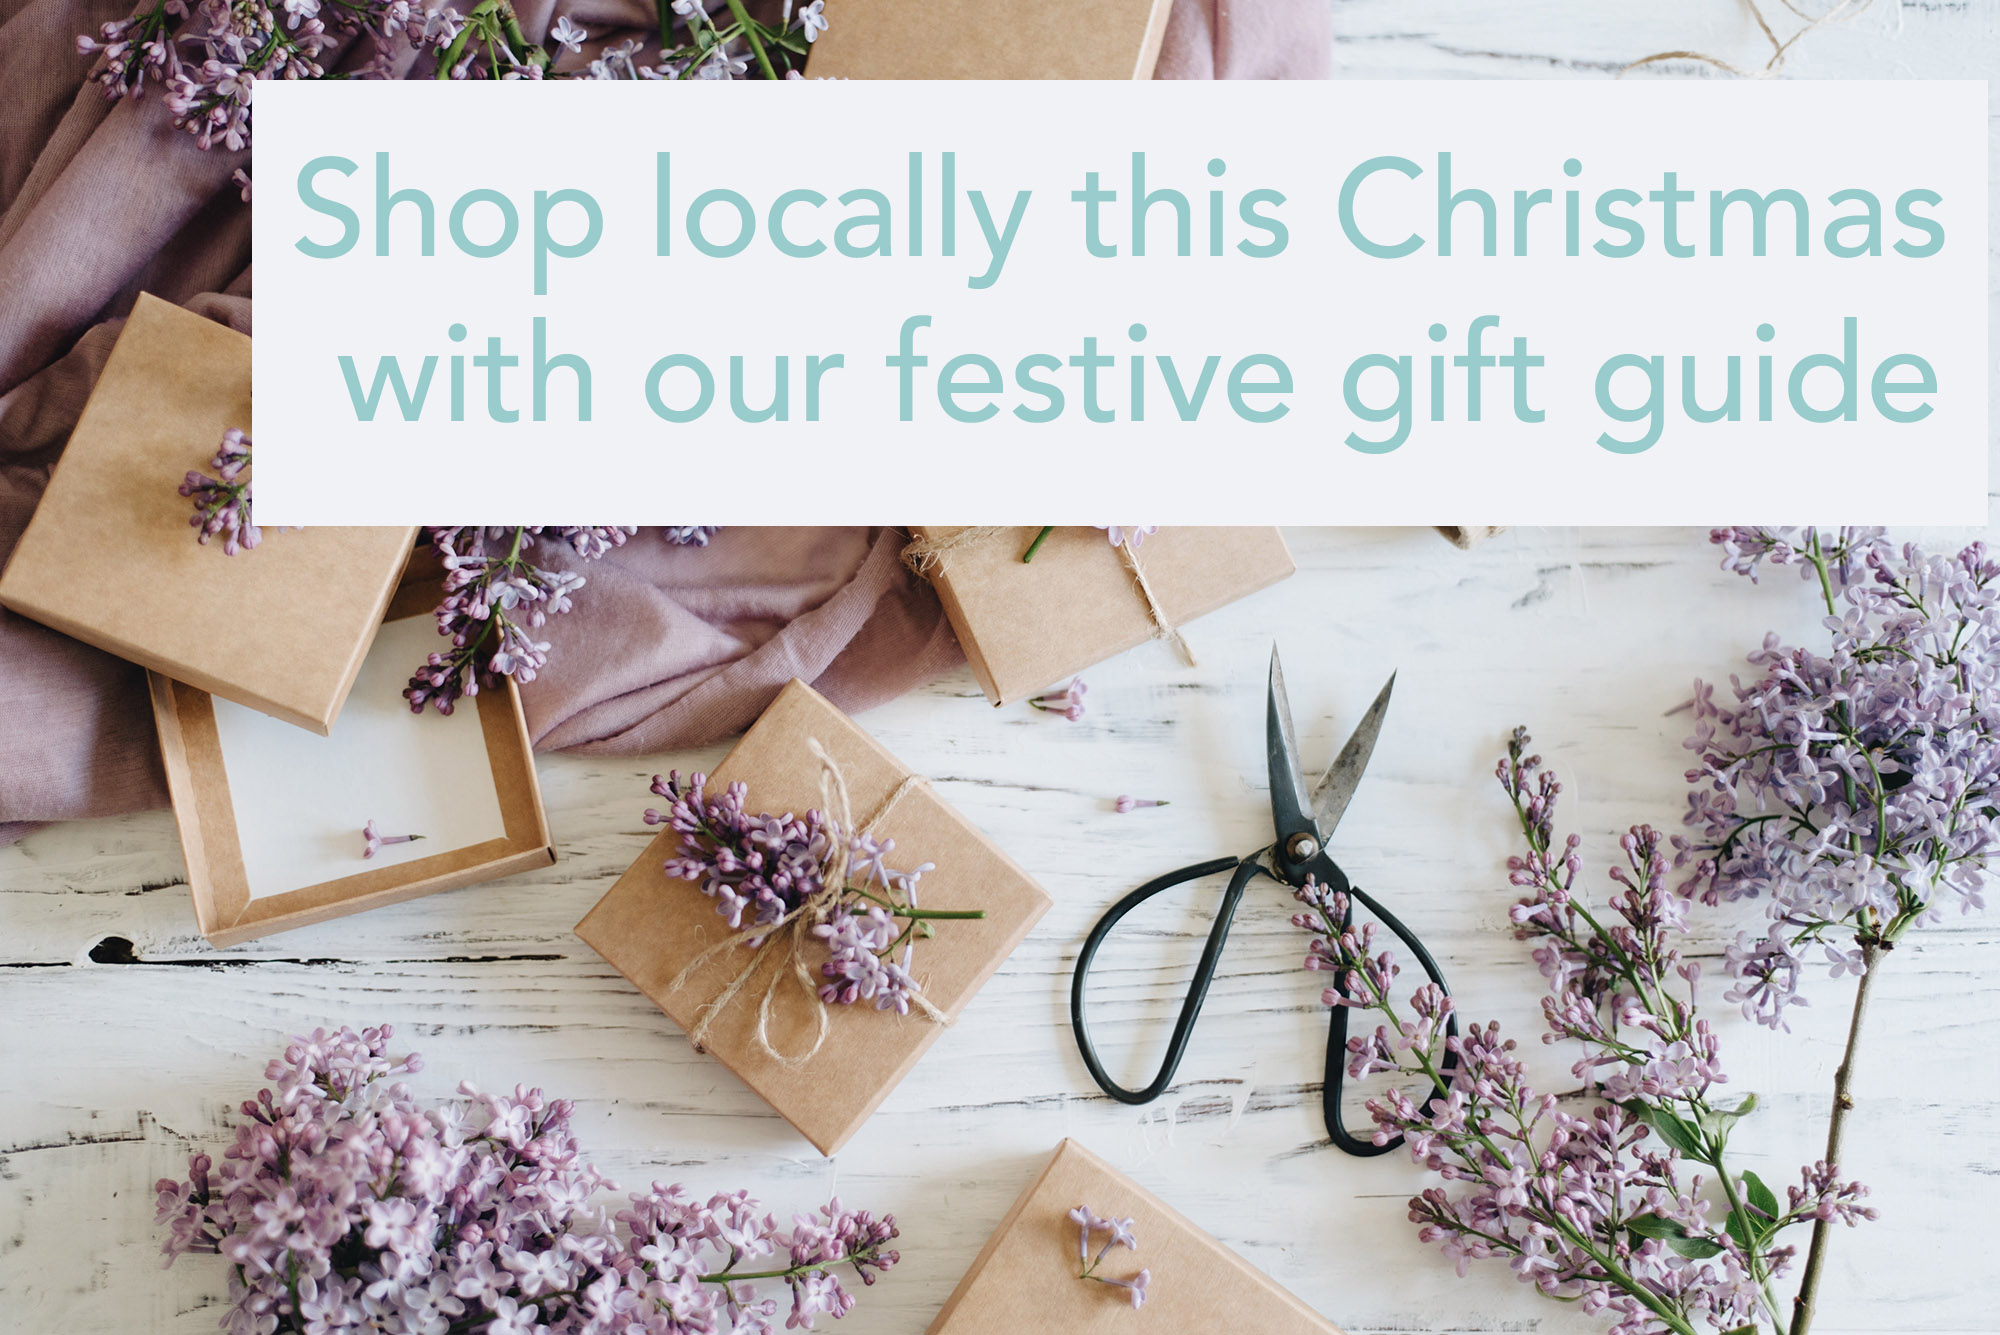 Allia's ethical gift guide to support independent, sustainable small businesses this festive season